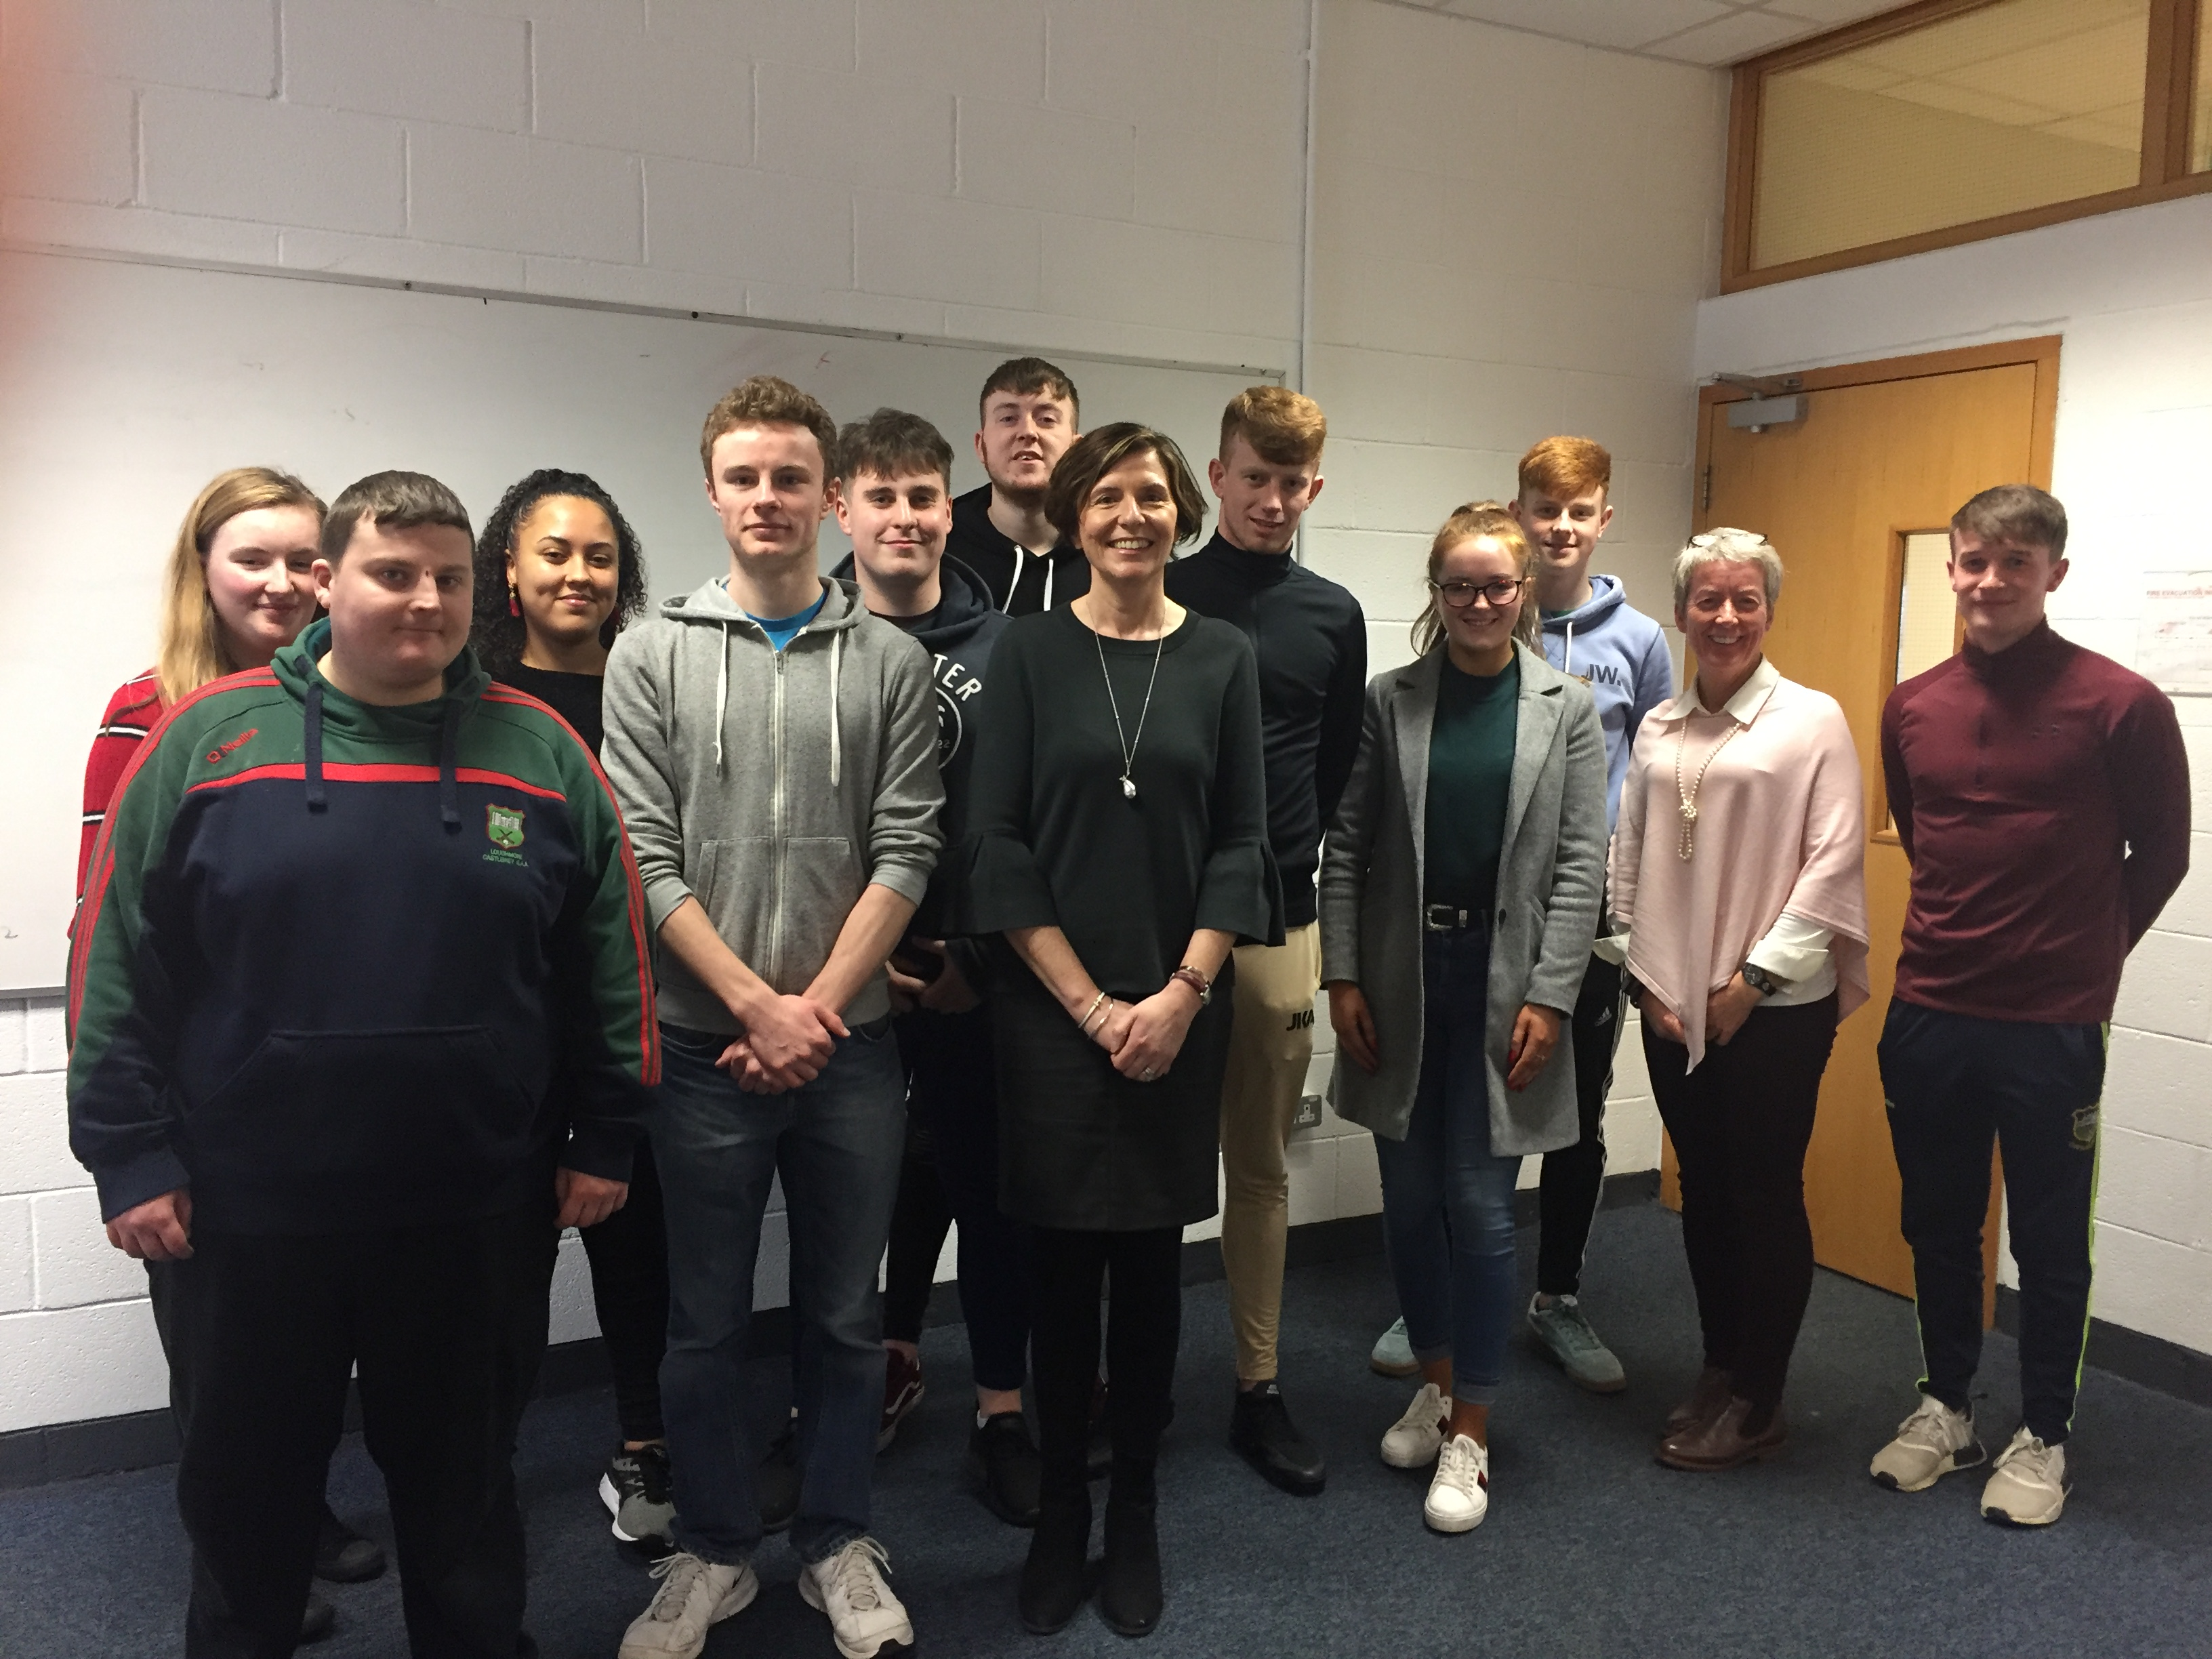 Sinead English, Hilt Career Management Services with students at her workshop 'Using social Media to maximize career opportunities